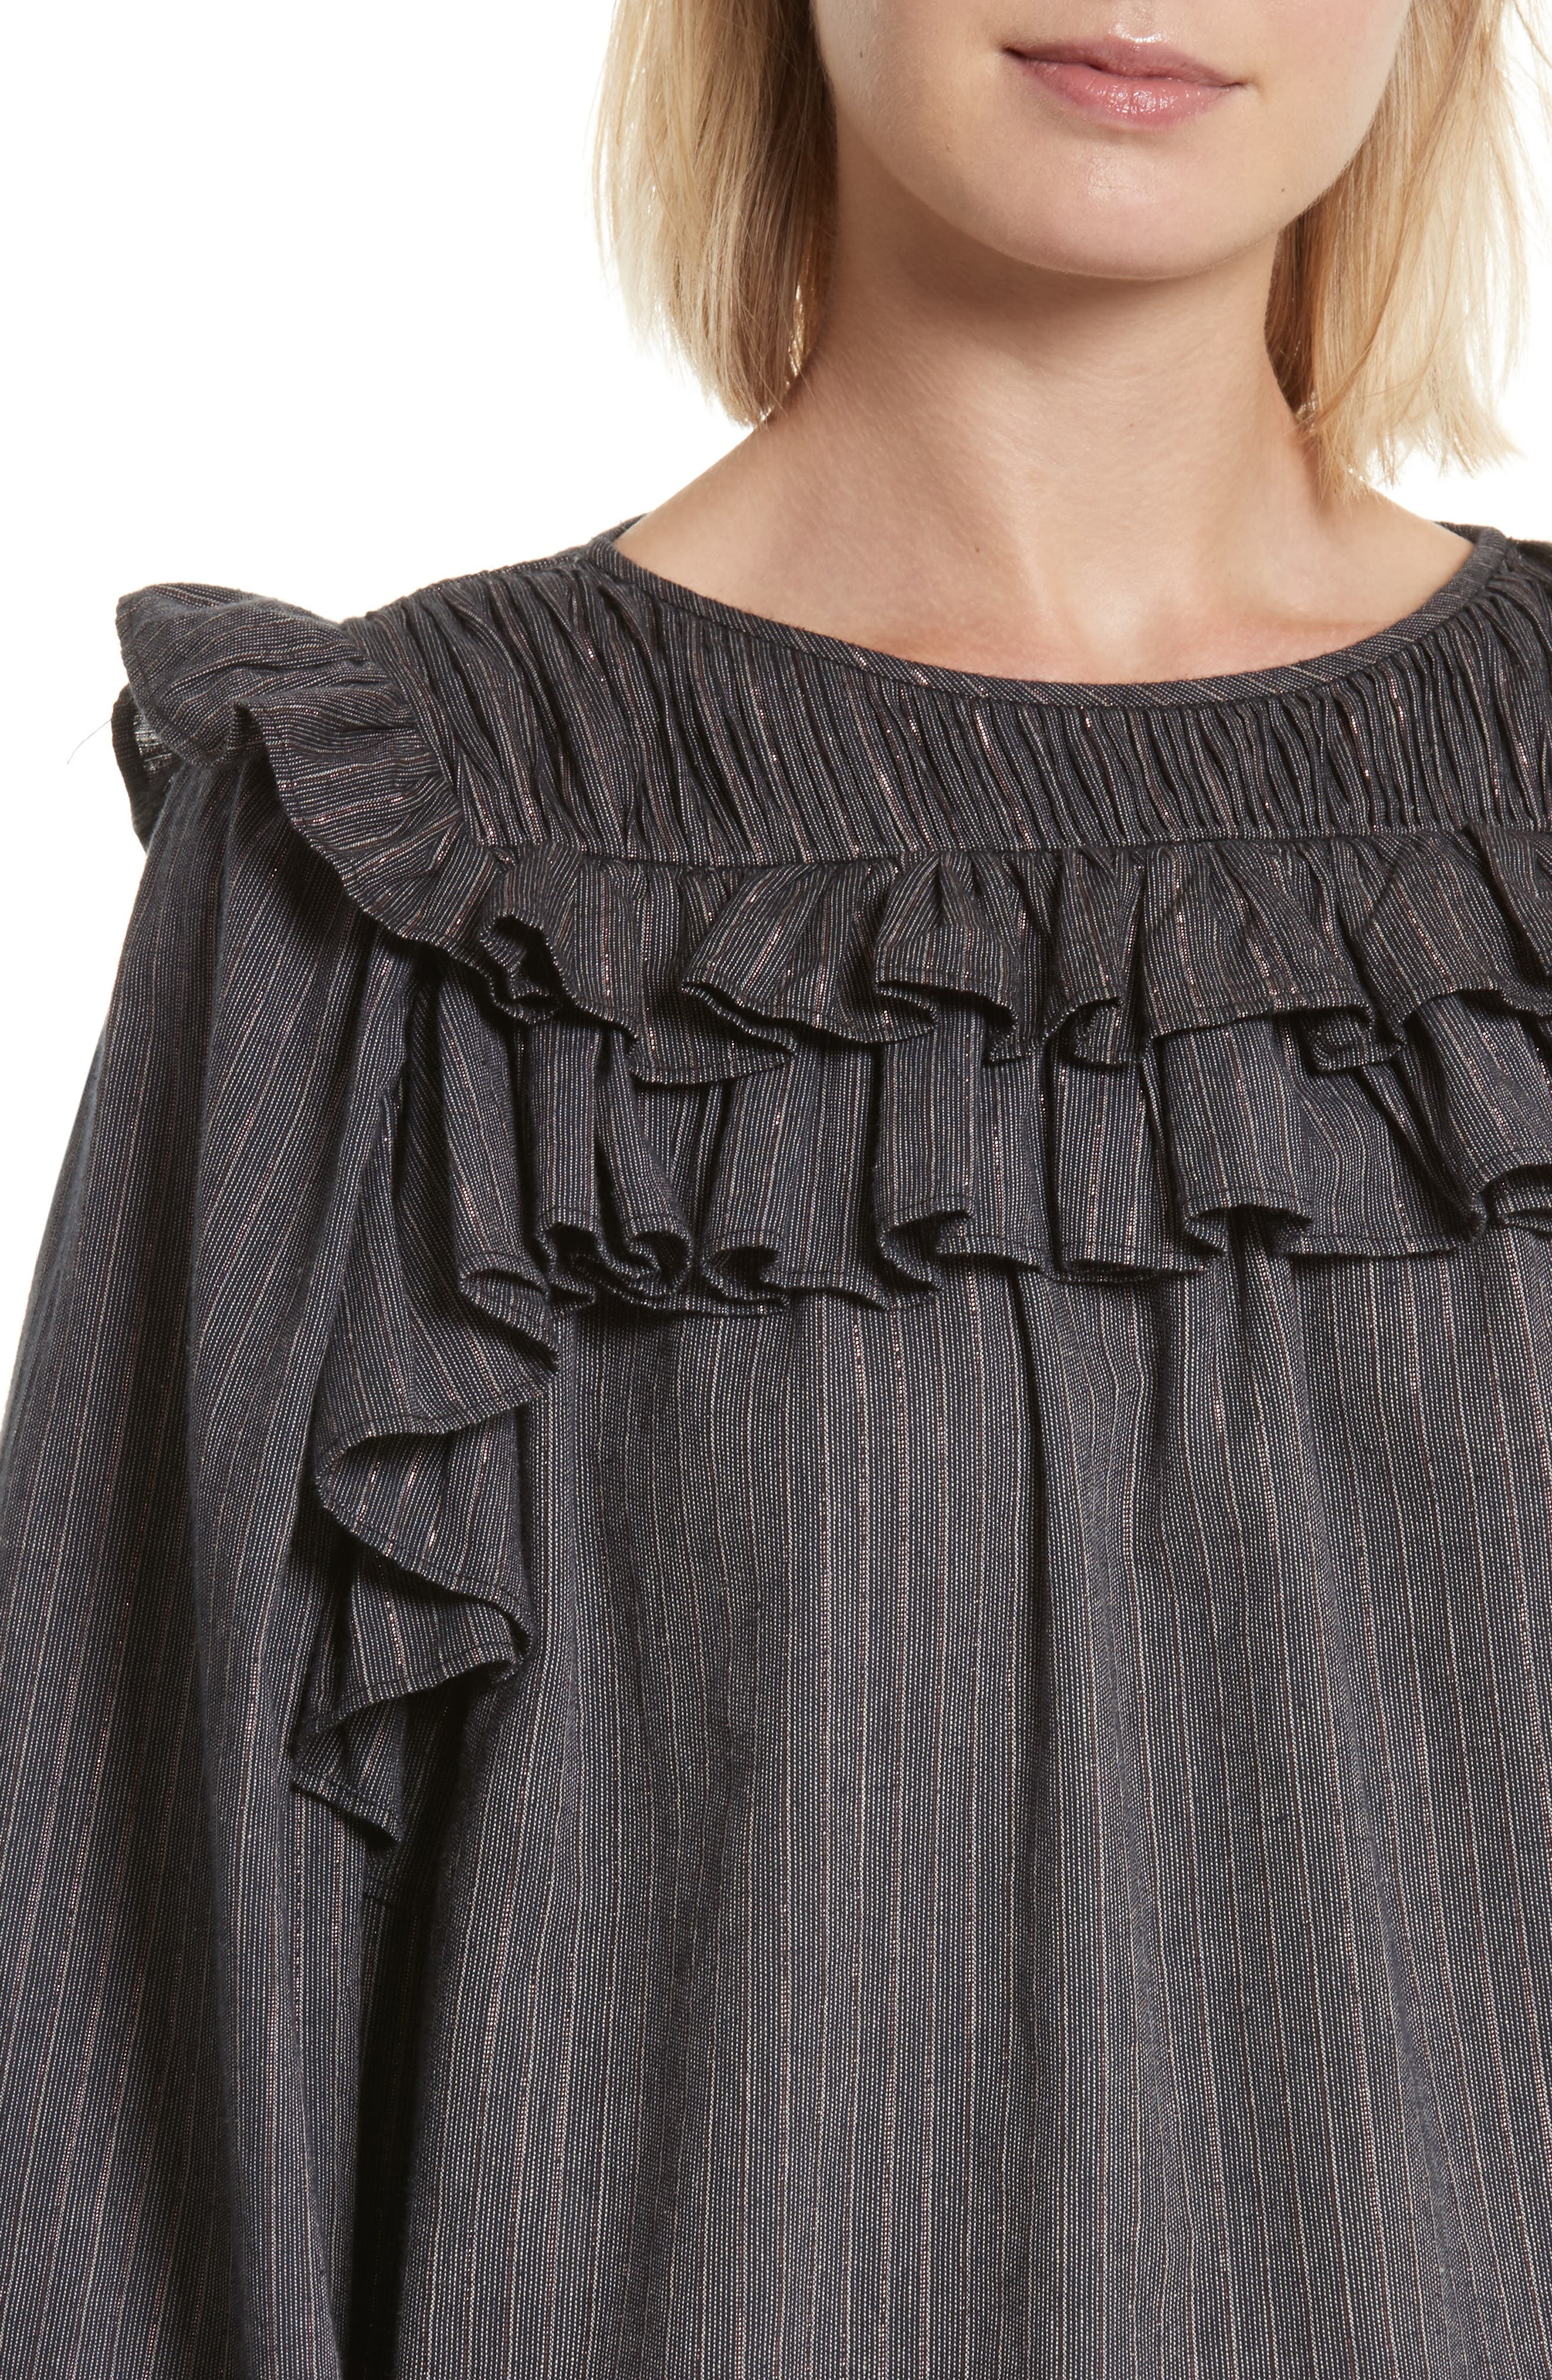 Ruffle Lurex<sup>®</sup> Stripe Blouse,                             Alternate thumbnail 4, color,                             Washed Black Combo